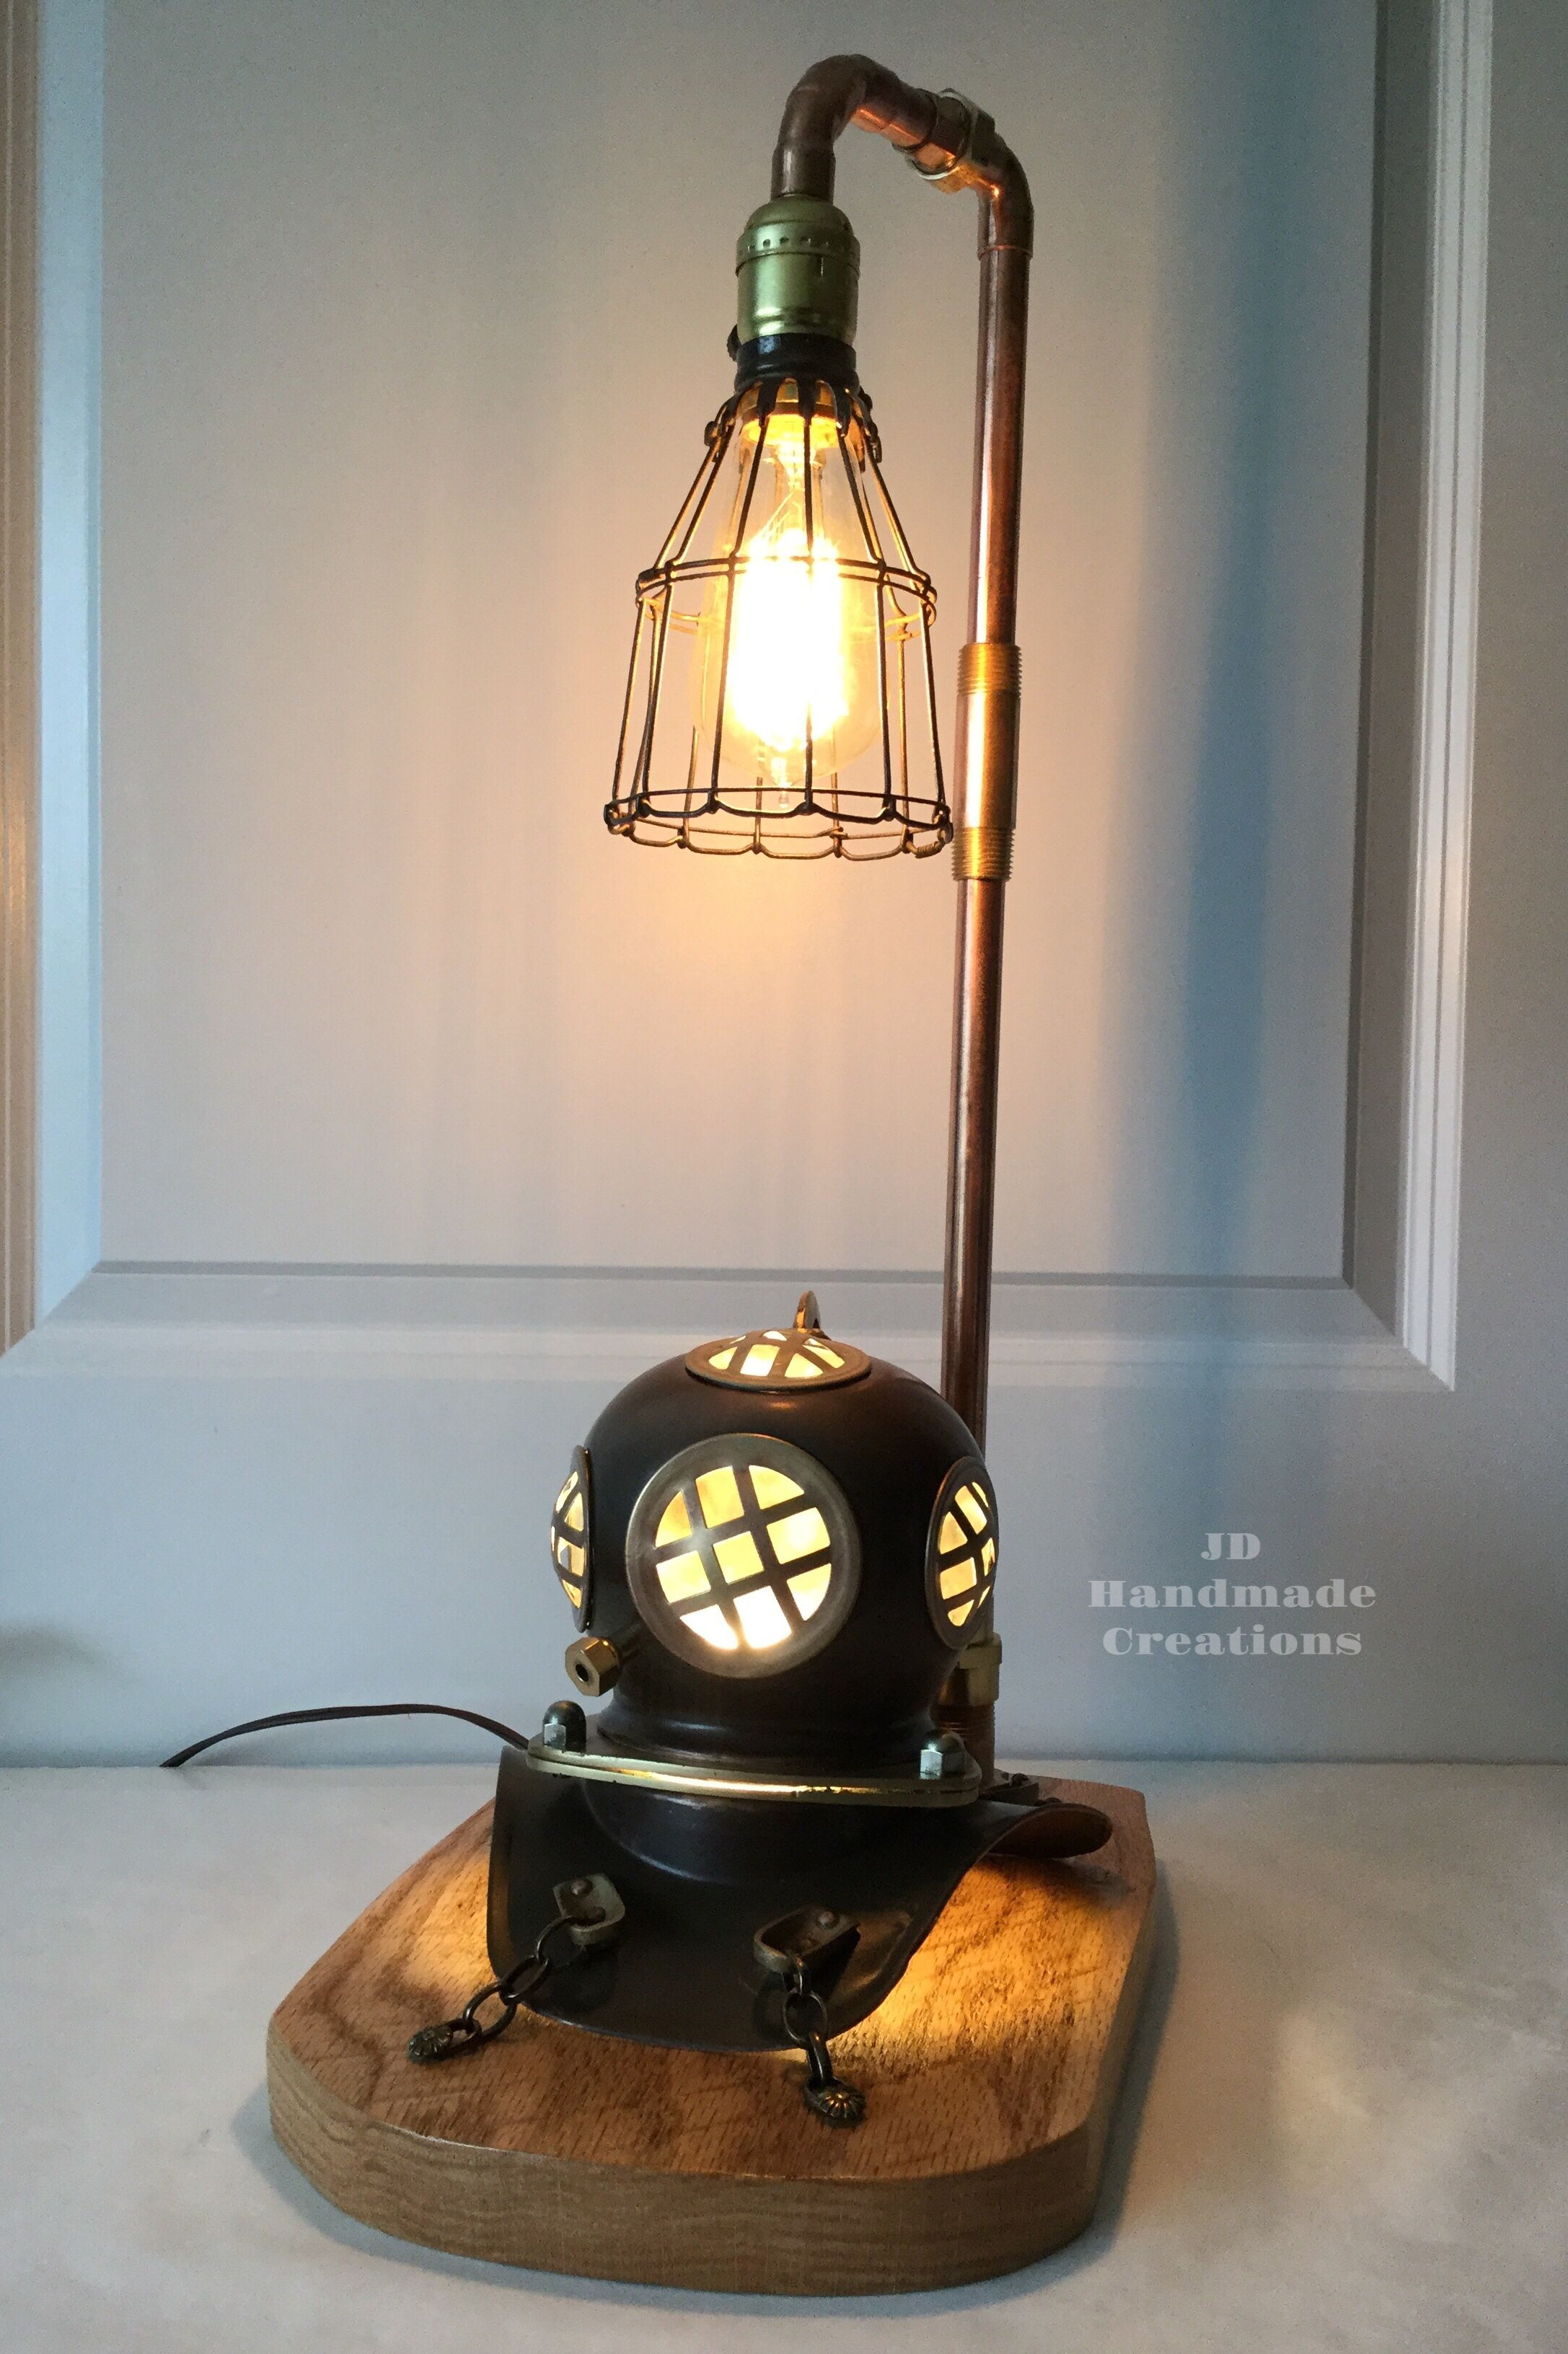 Copper And Brass Lamp With Wooden Base Has A 3 Way Switch So The Light In The Diving Helmet Can Be Used As A Nightlight Lamp Helmet Light Handmade Lamp